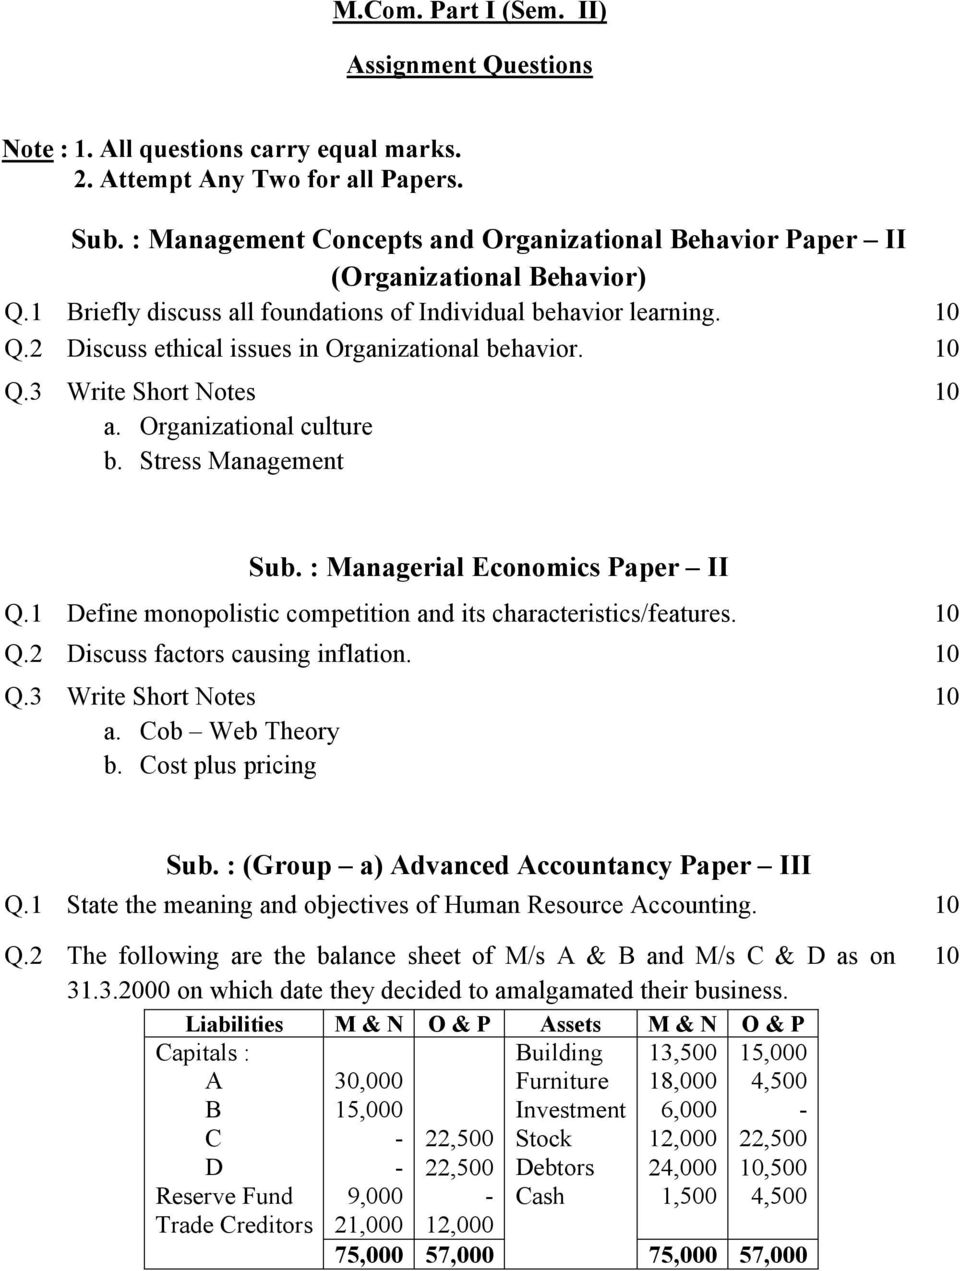 a. Organizational culture b. Stress Management Sub. : Managerial Economics Paper II Q.1 Define monopolistic competition and its characteristics/features. Q.2 Discuss factors causing inflation. a. Cob Web Theory b.